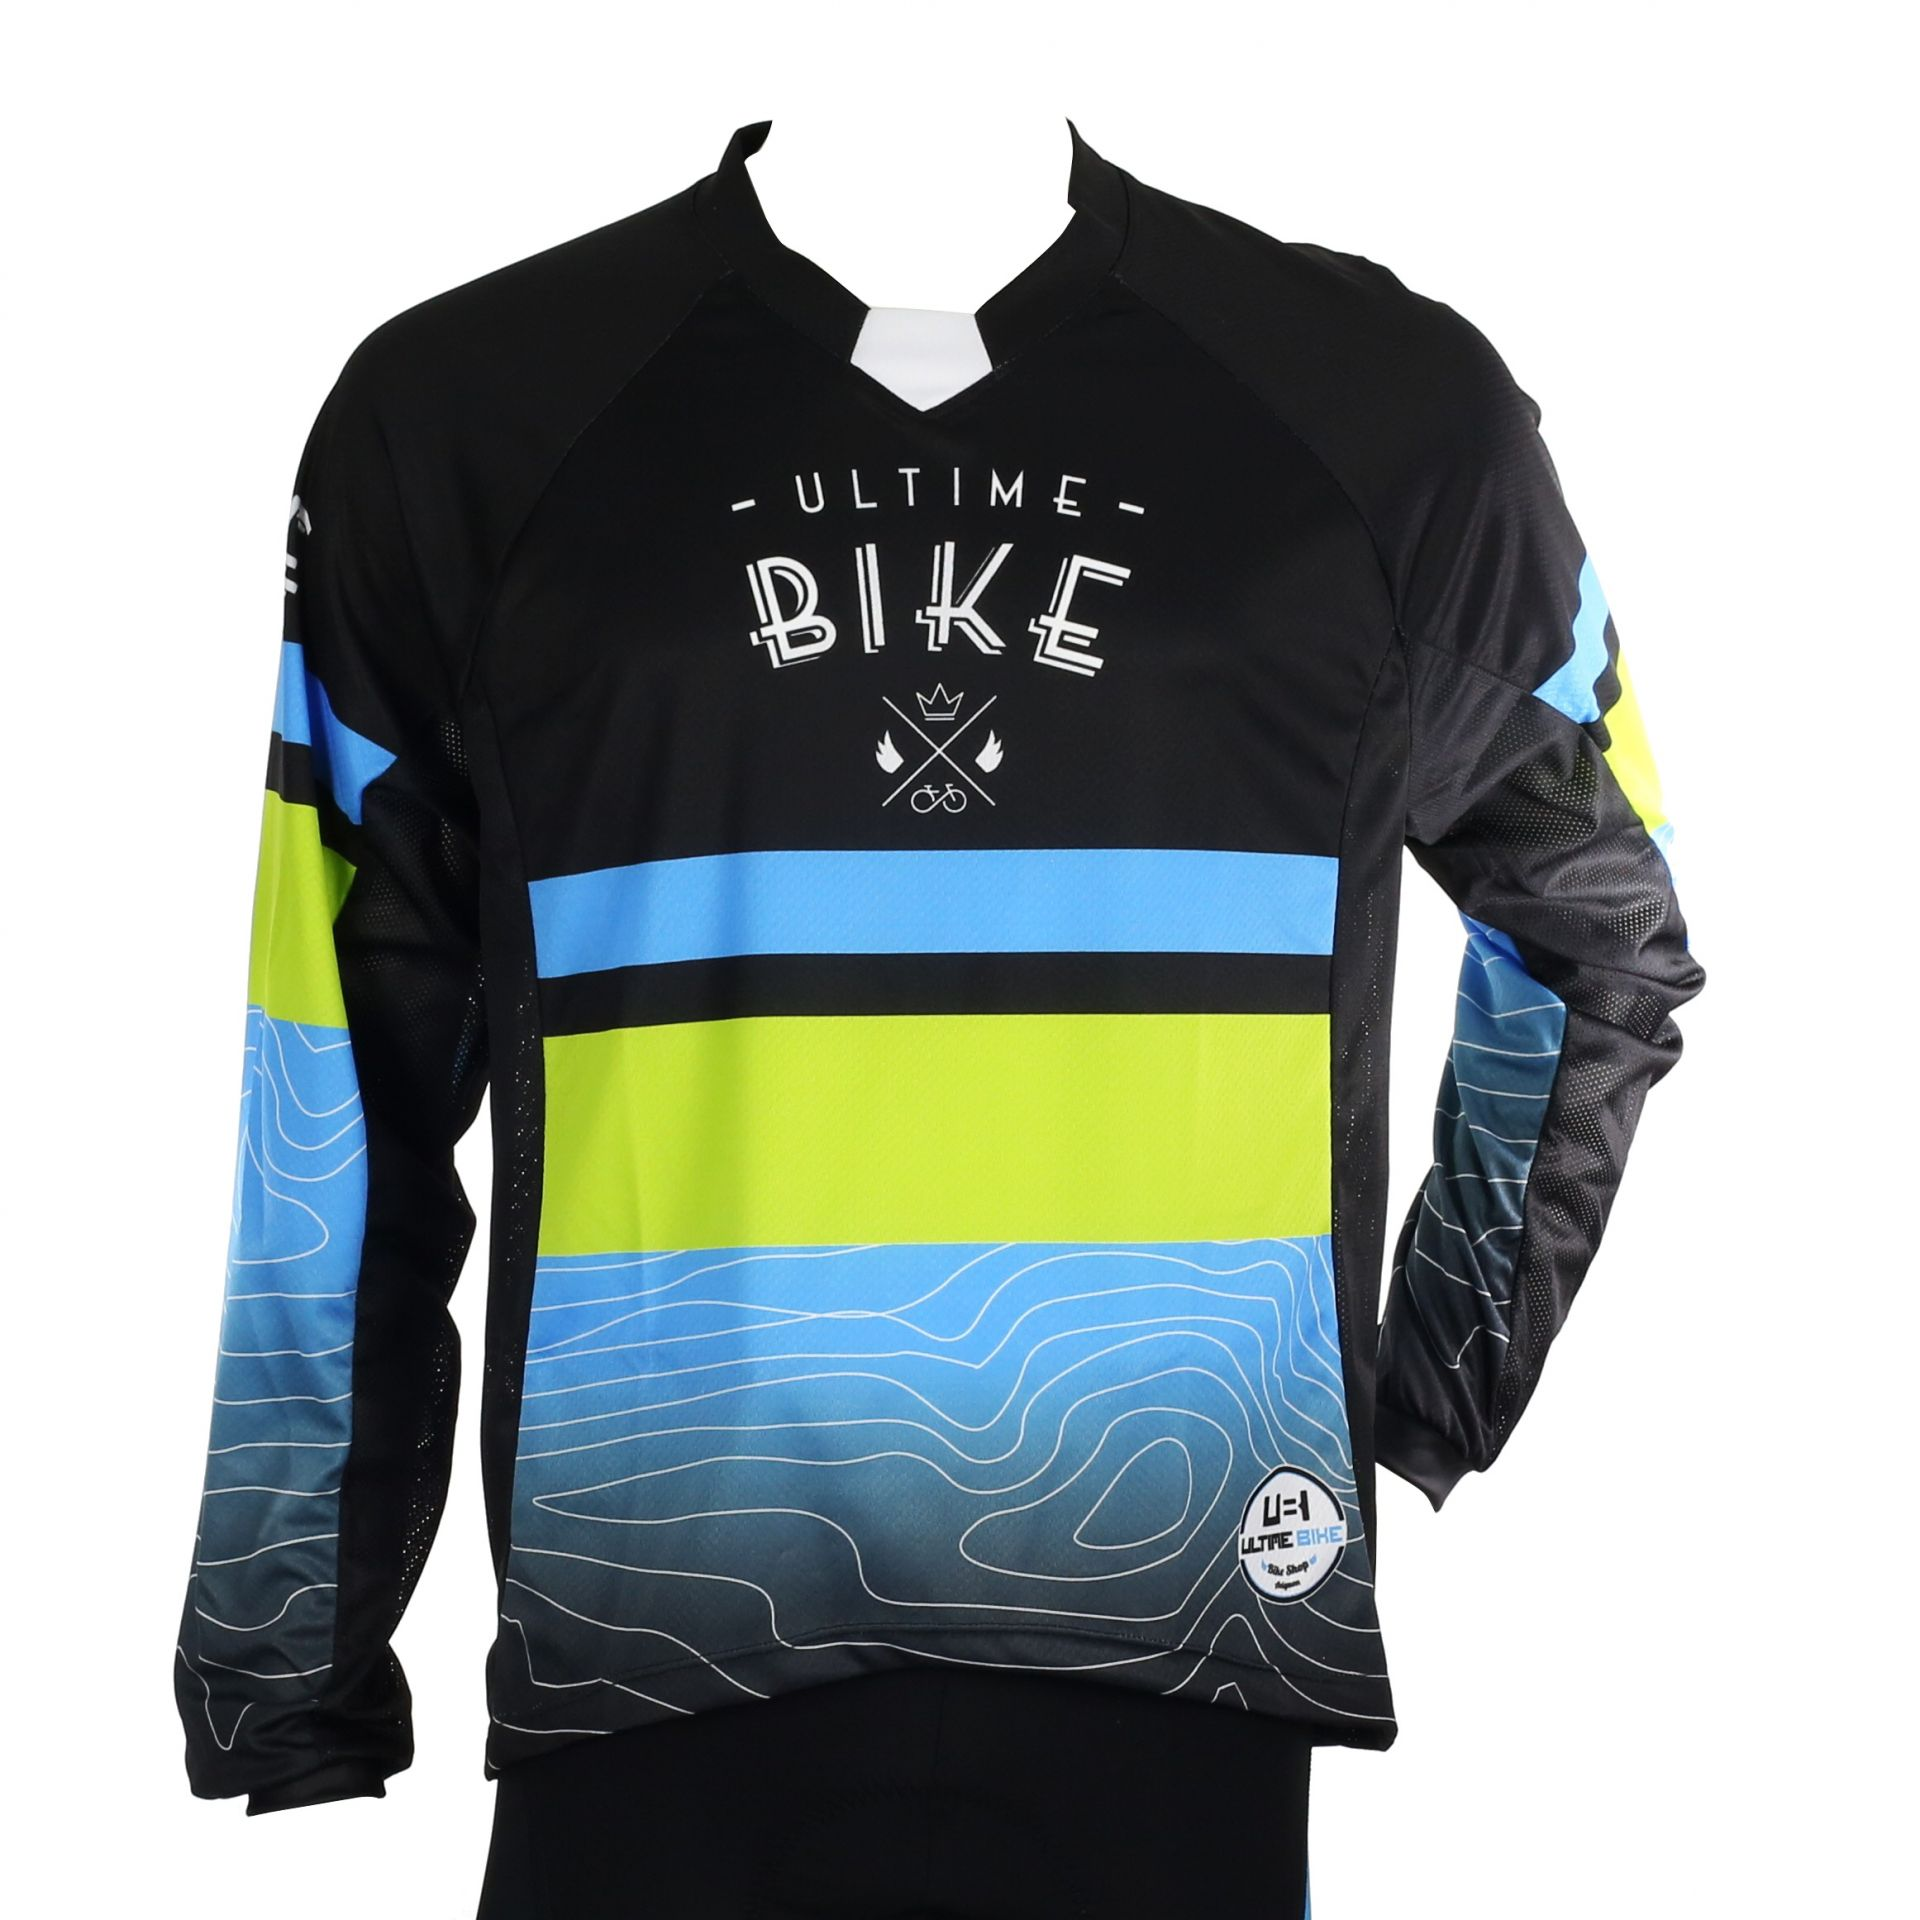 Maillot UltimeBike Enduro by TACTIC Manches longues - XL